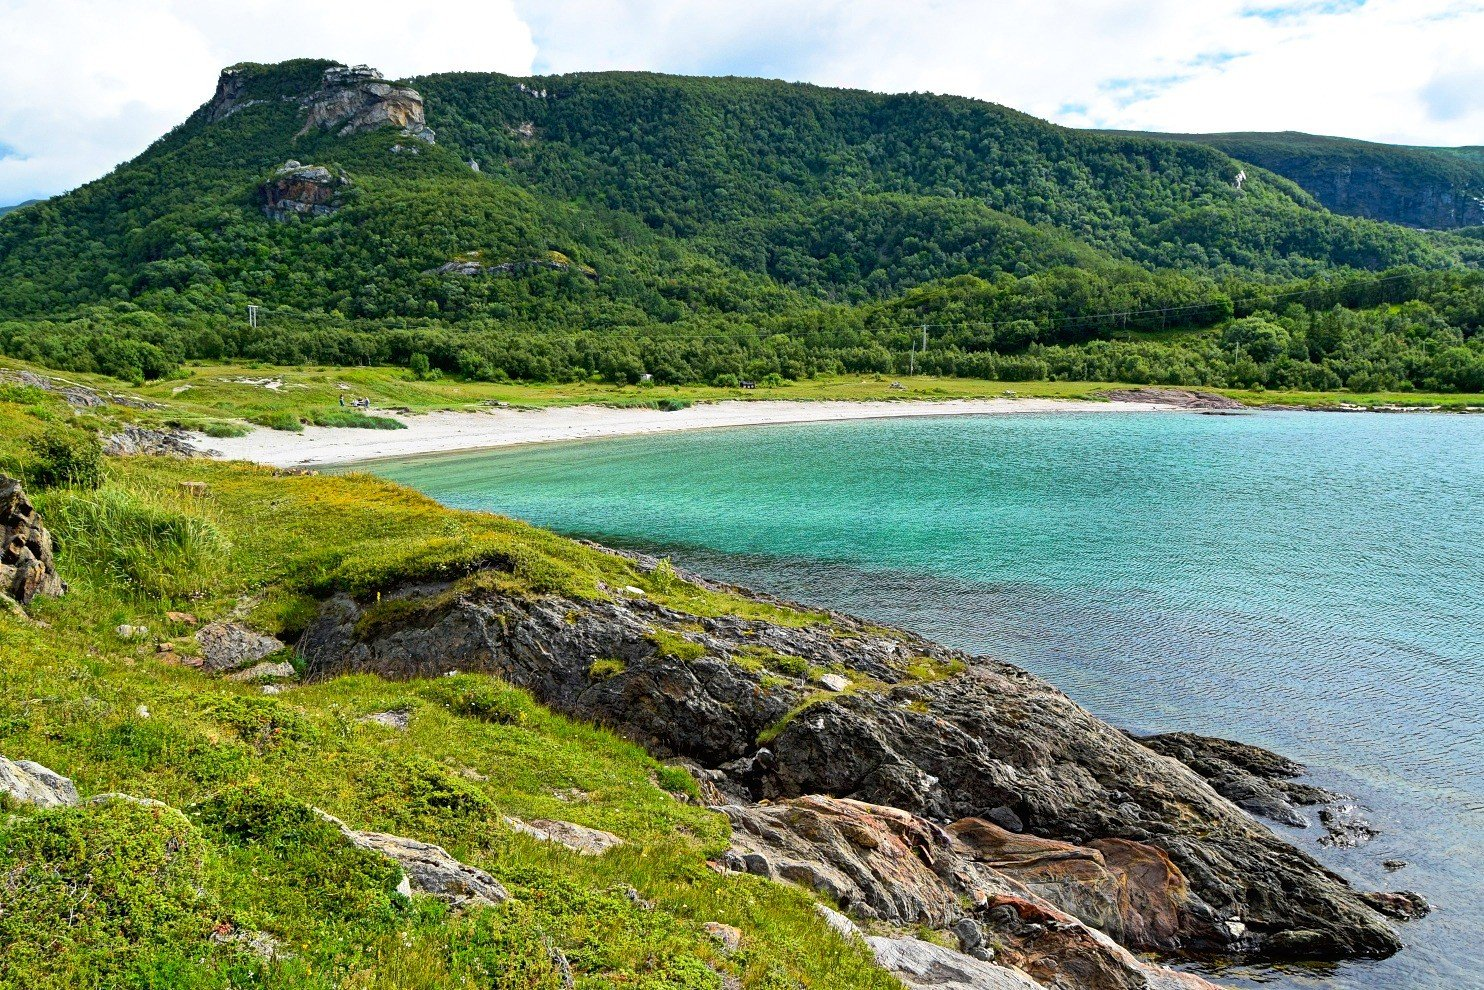 Ausvika Beach outside Bodø city